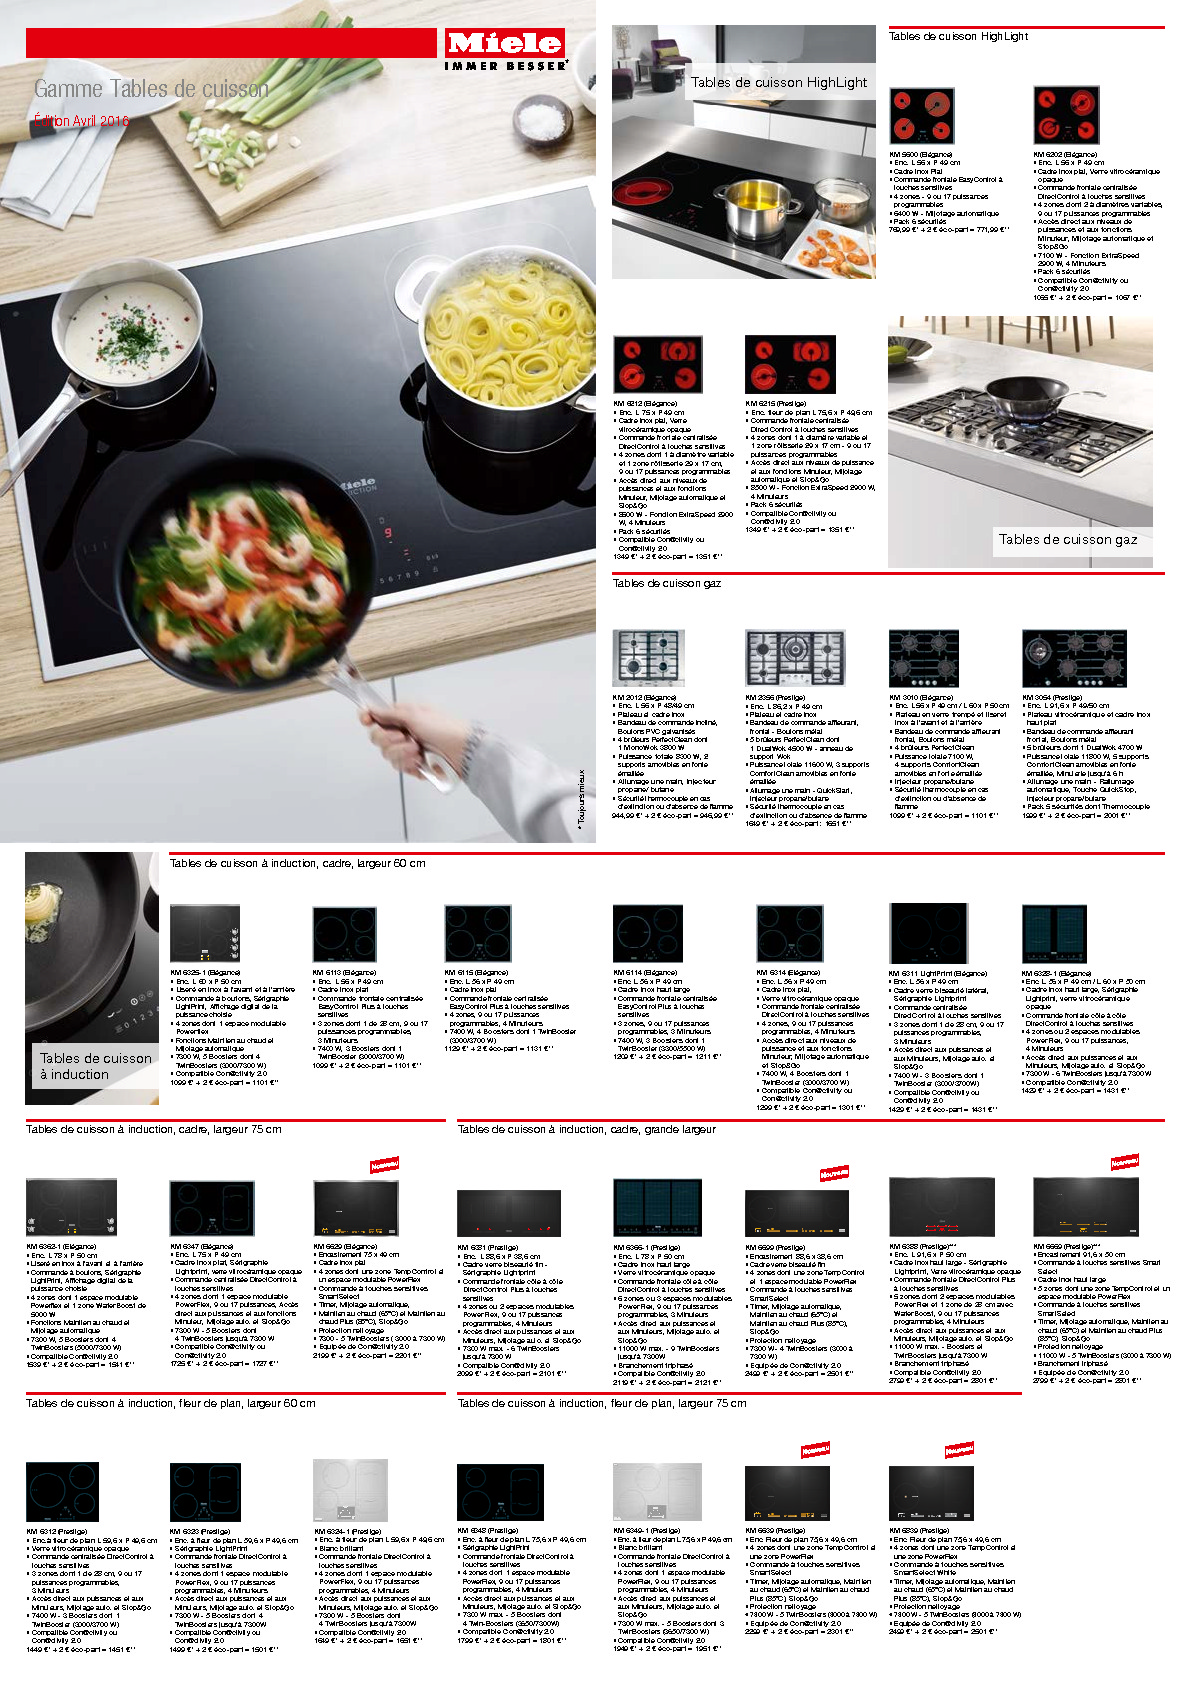 https://www.miele.fr/media/ex/fr/brochures/Poster_tables_de_cuisson_avril_2016.pdf